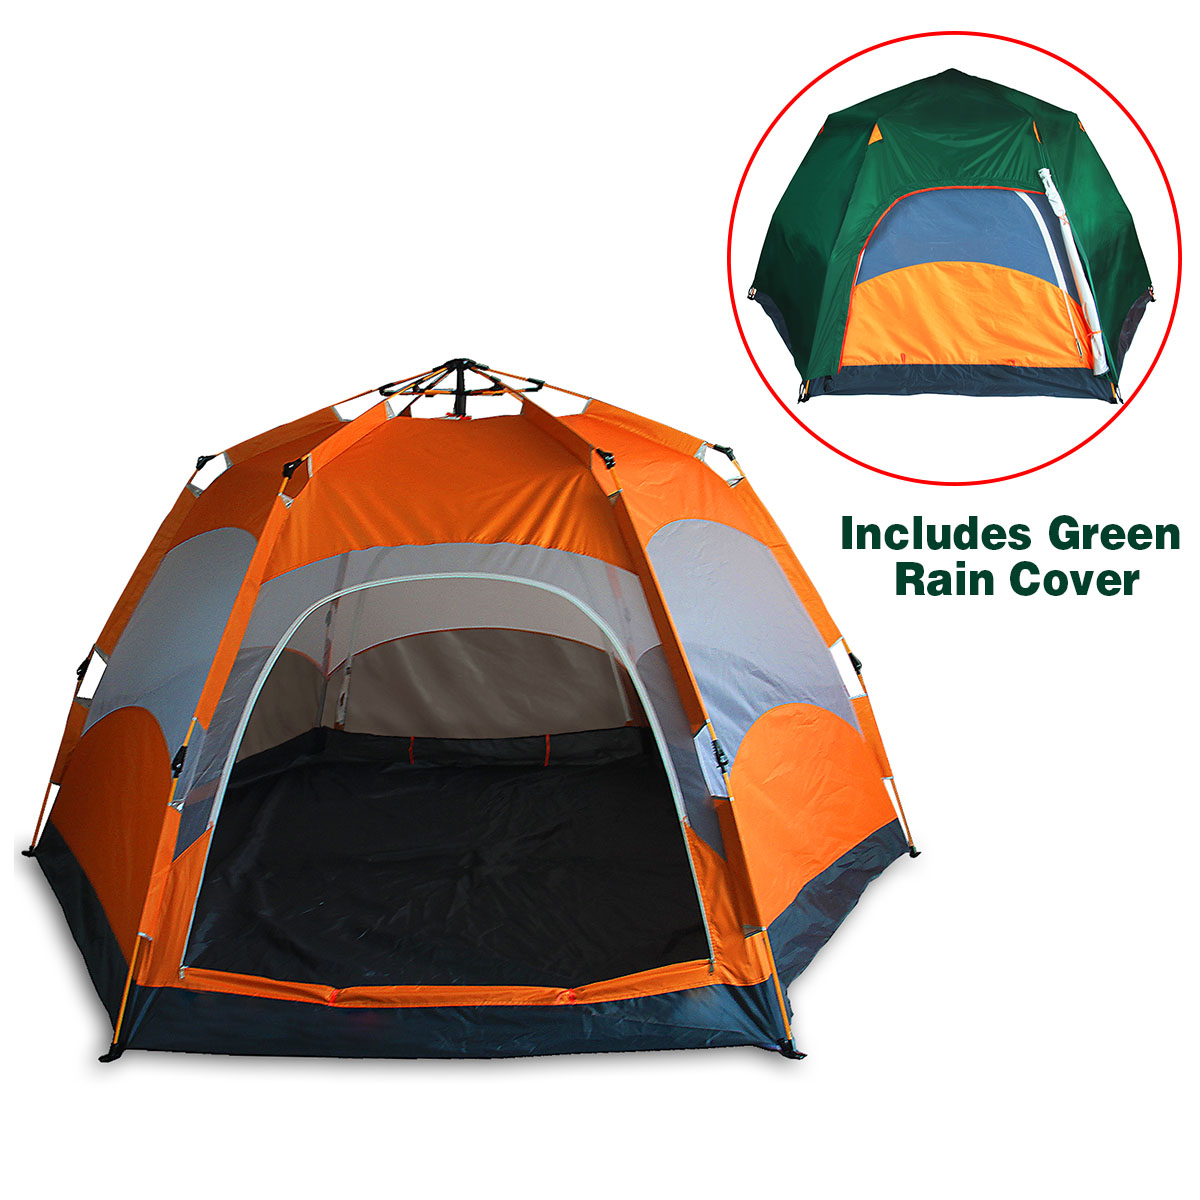 Qwest 4 person Portable Instant Water Resistant Camping Tent Canopy Shelter Green by Qwest